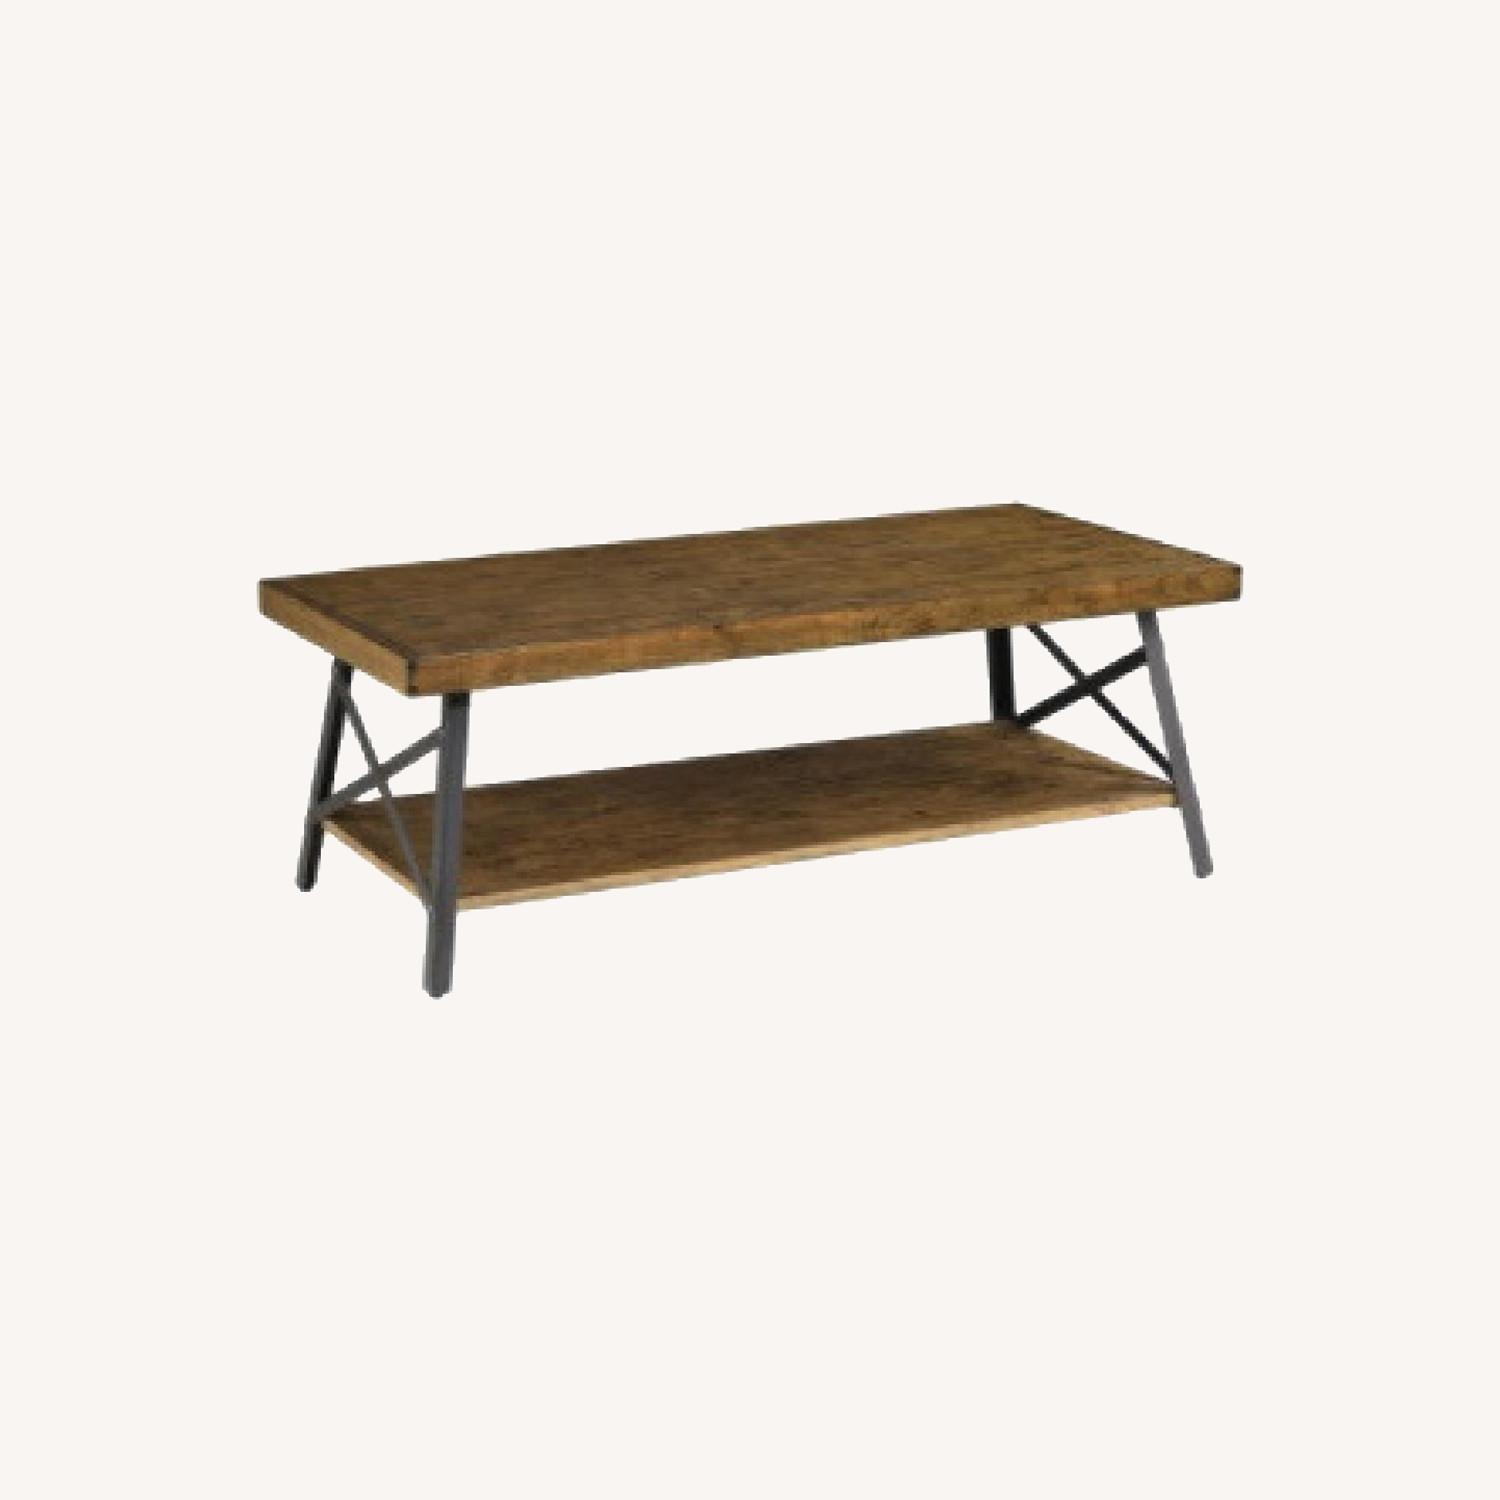 Wood Coffee Table with Metal Legs - image-0